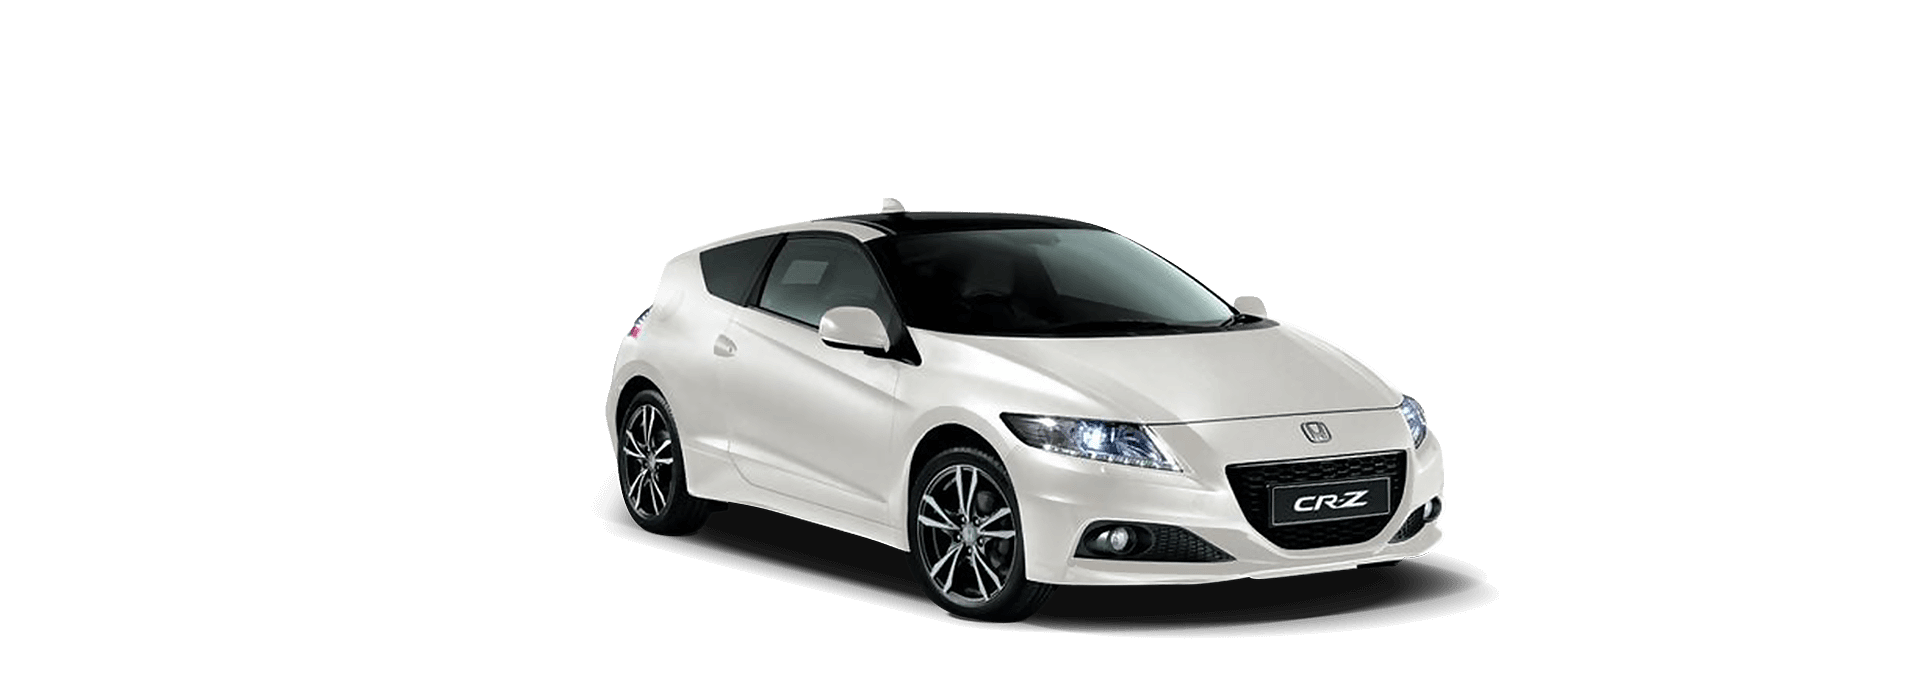 Used Honda CR-Z Coupé: Buy Approved Second-Hand Models Here